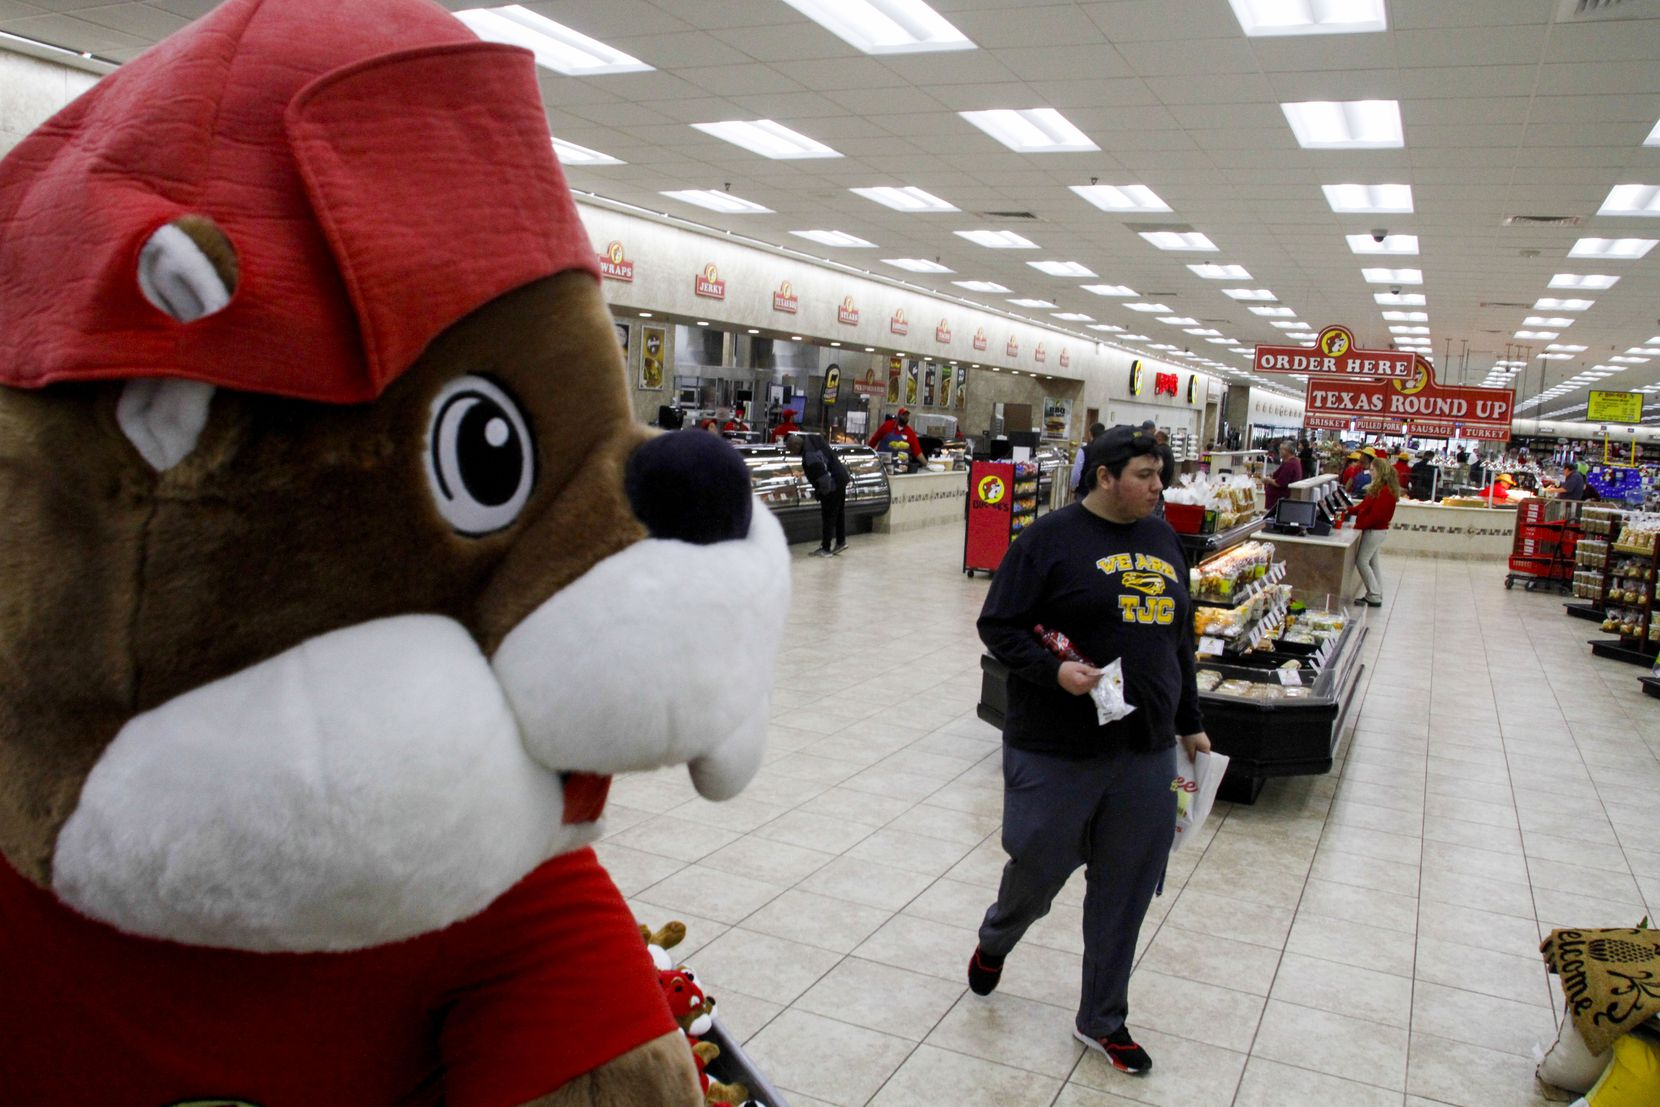 Jose Gonzalez walks by a large stuffed beaver at Buc-ee's in Terrell.